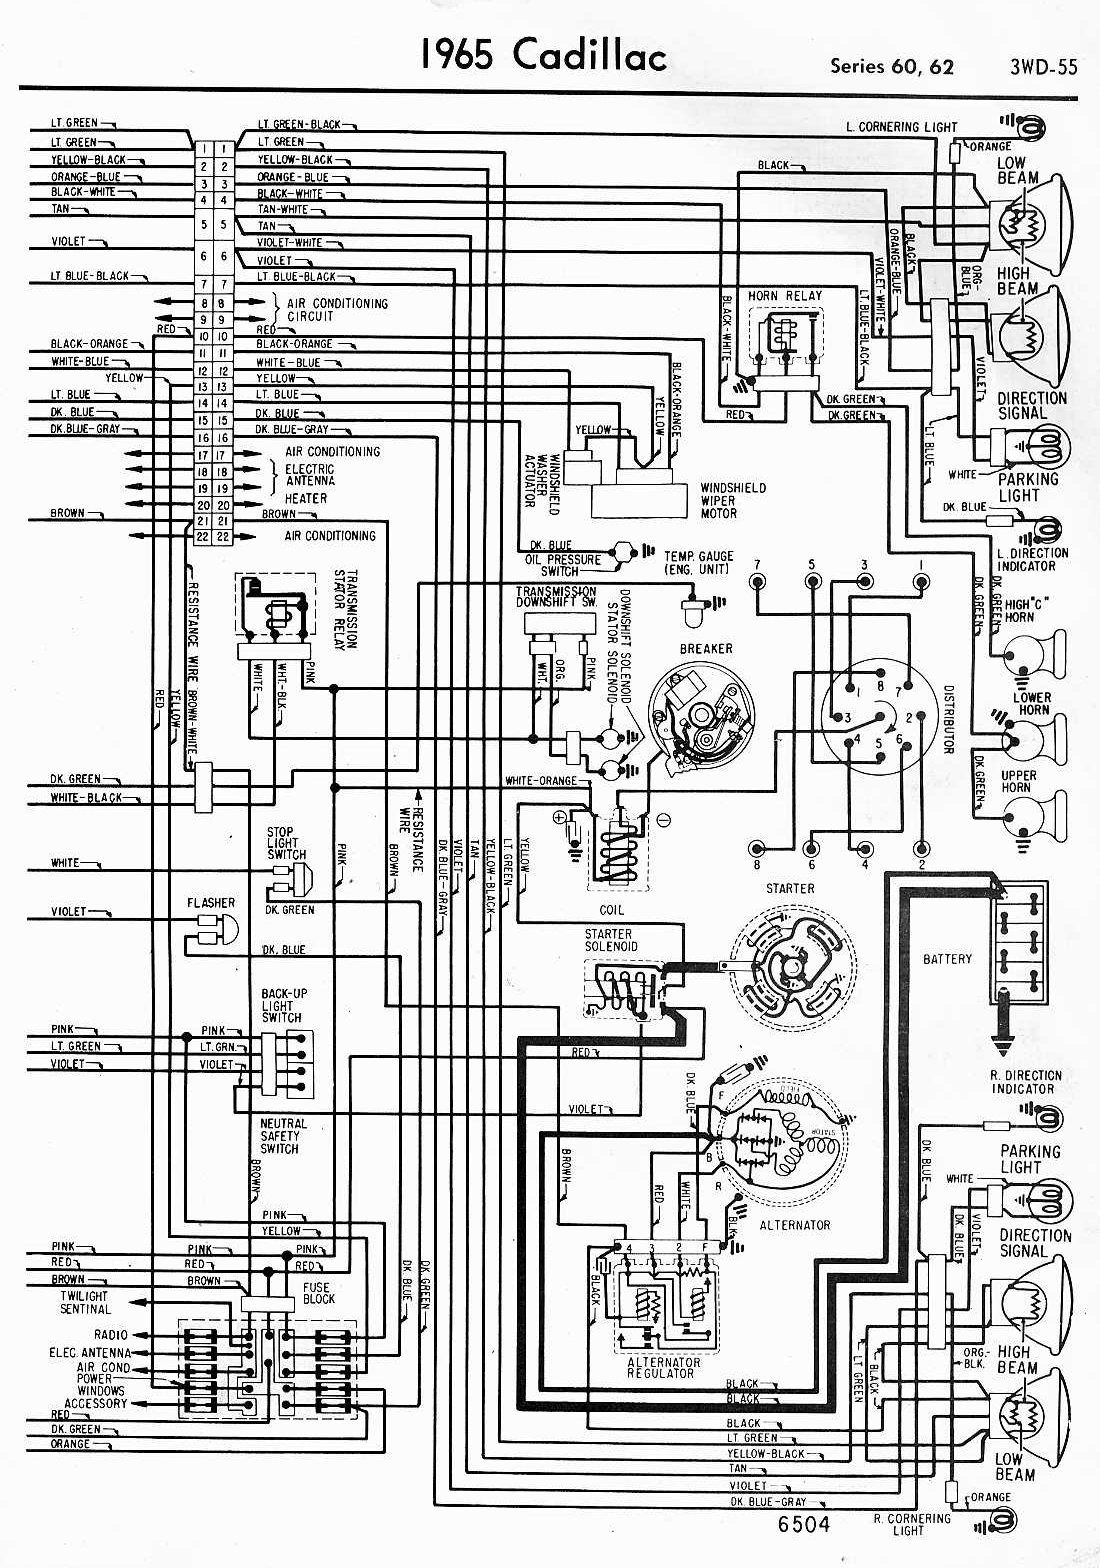 75 cadillac radio wiring circuit diagram symbols \u2022 1967 cadillac alternator wiring diagram cadillac car manuals wiring diagrams pdf fault codes rh automotive manuals net 75 cadillac coupe deville 78 cadillac